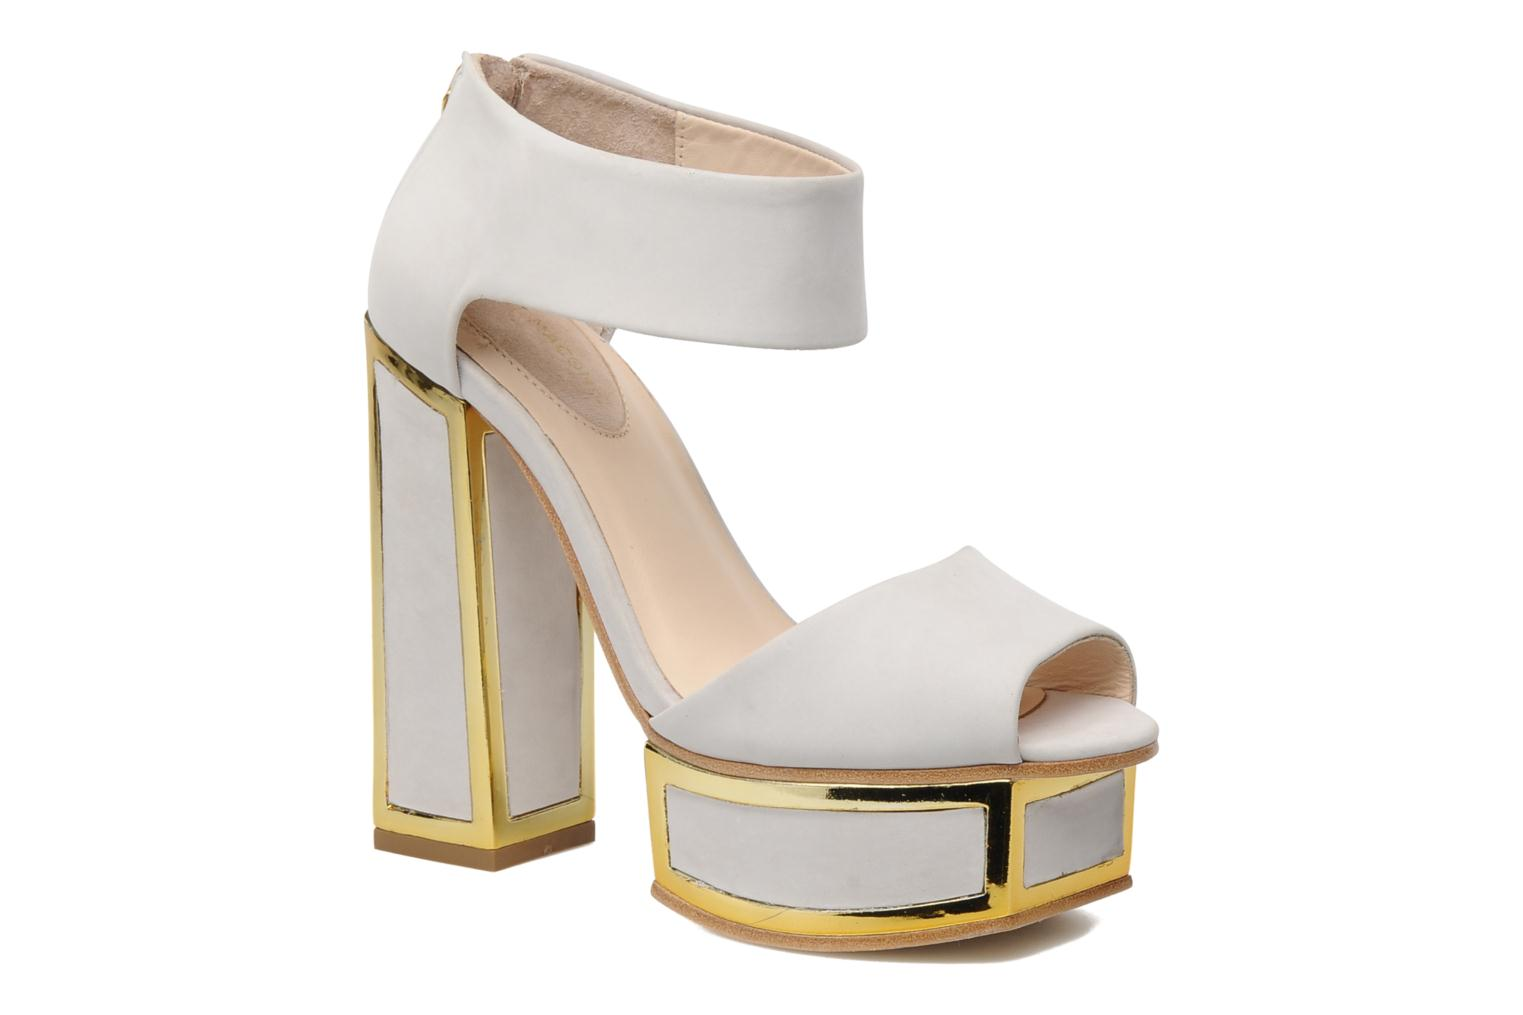 PEARL GREY LEATHER GOLD METAL HEEL